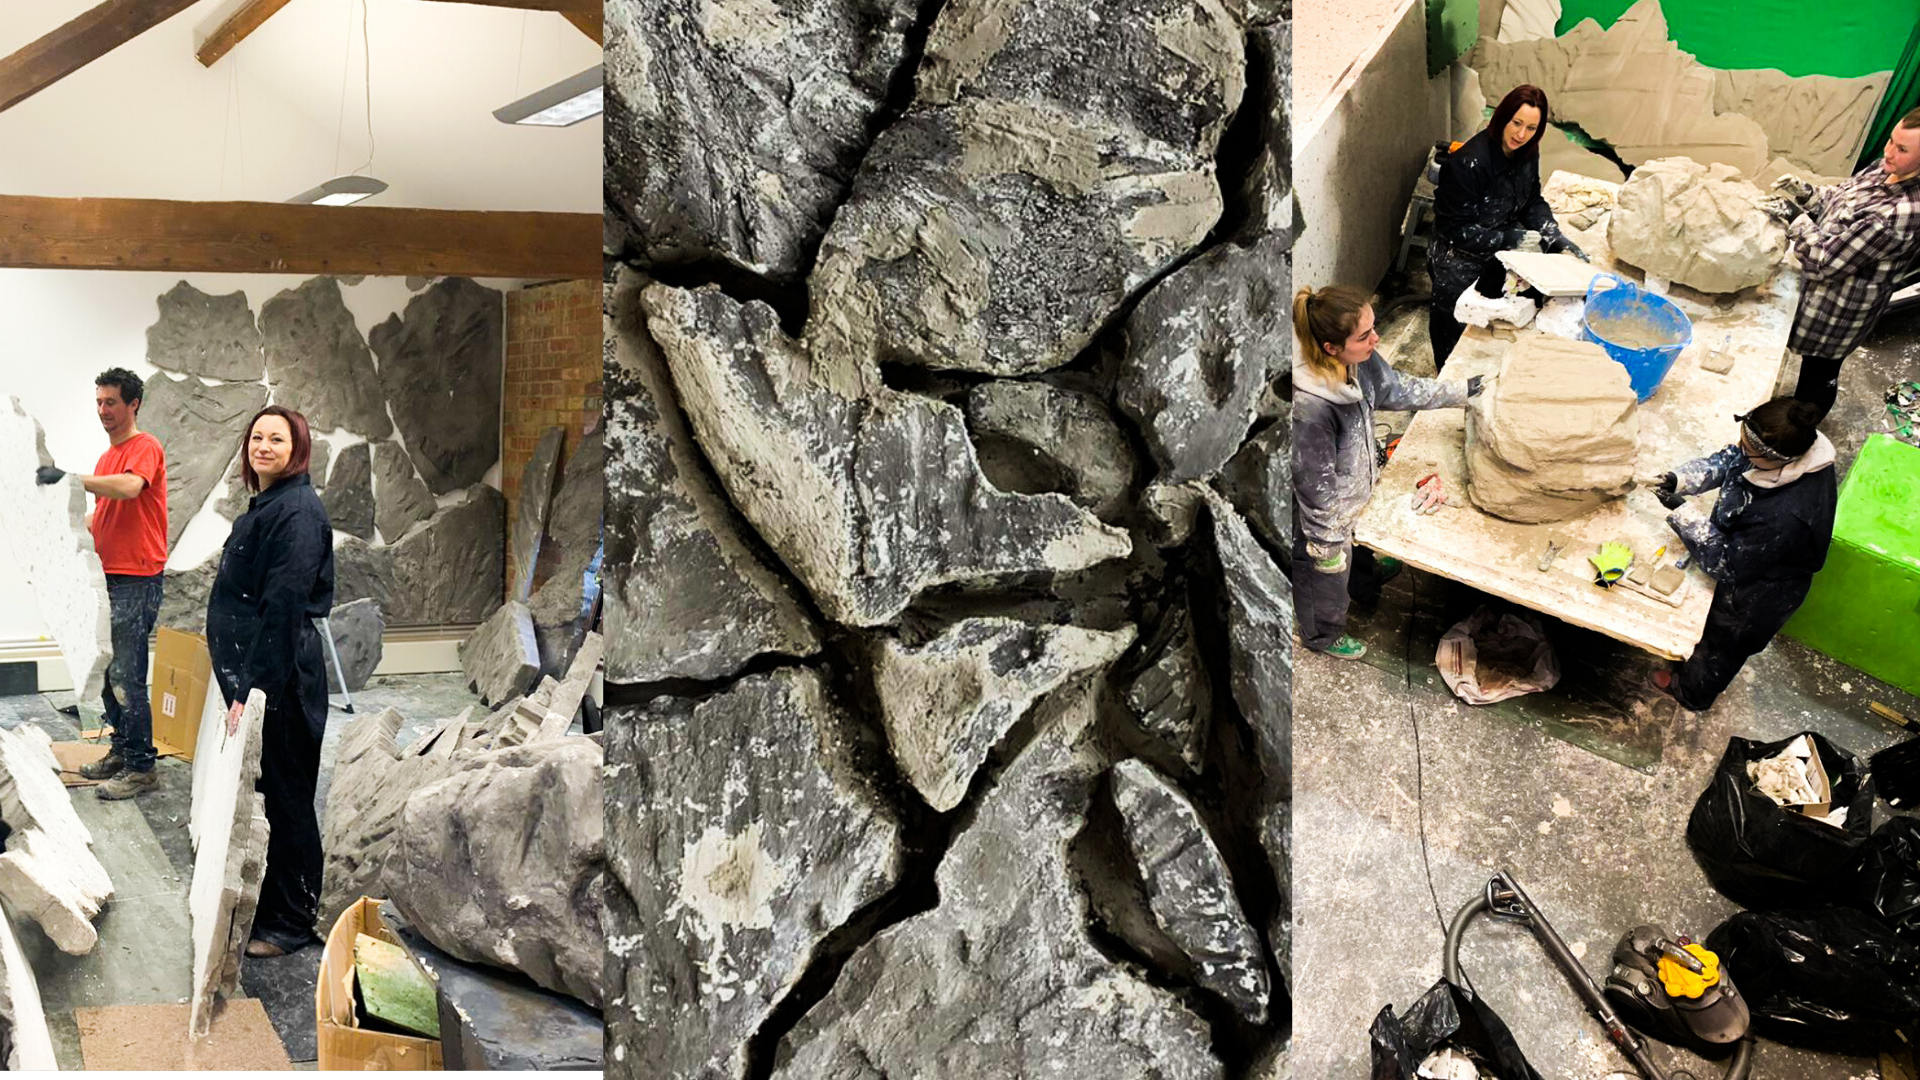 Behind the Scenes: Building the Rock Wall